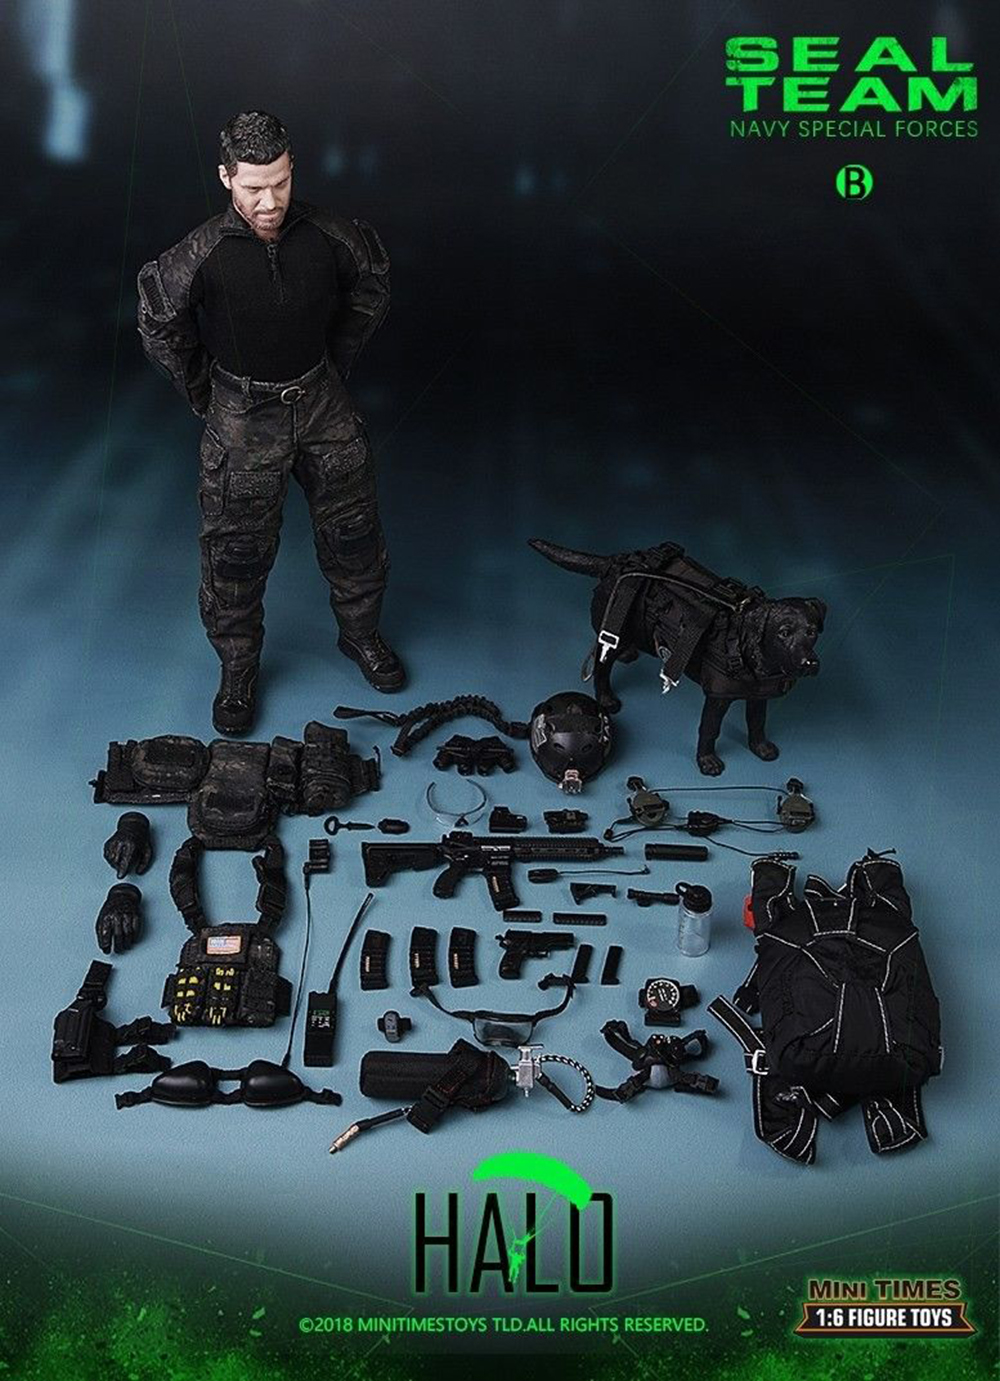 Full set with police dog mini times toys M013 1/6 Navy Special Forces Seal Team B Figure Full Set Collection Doll Toys Gift 1